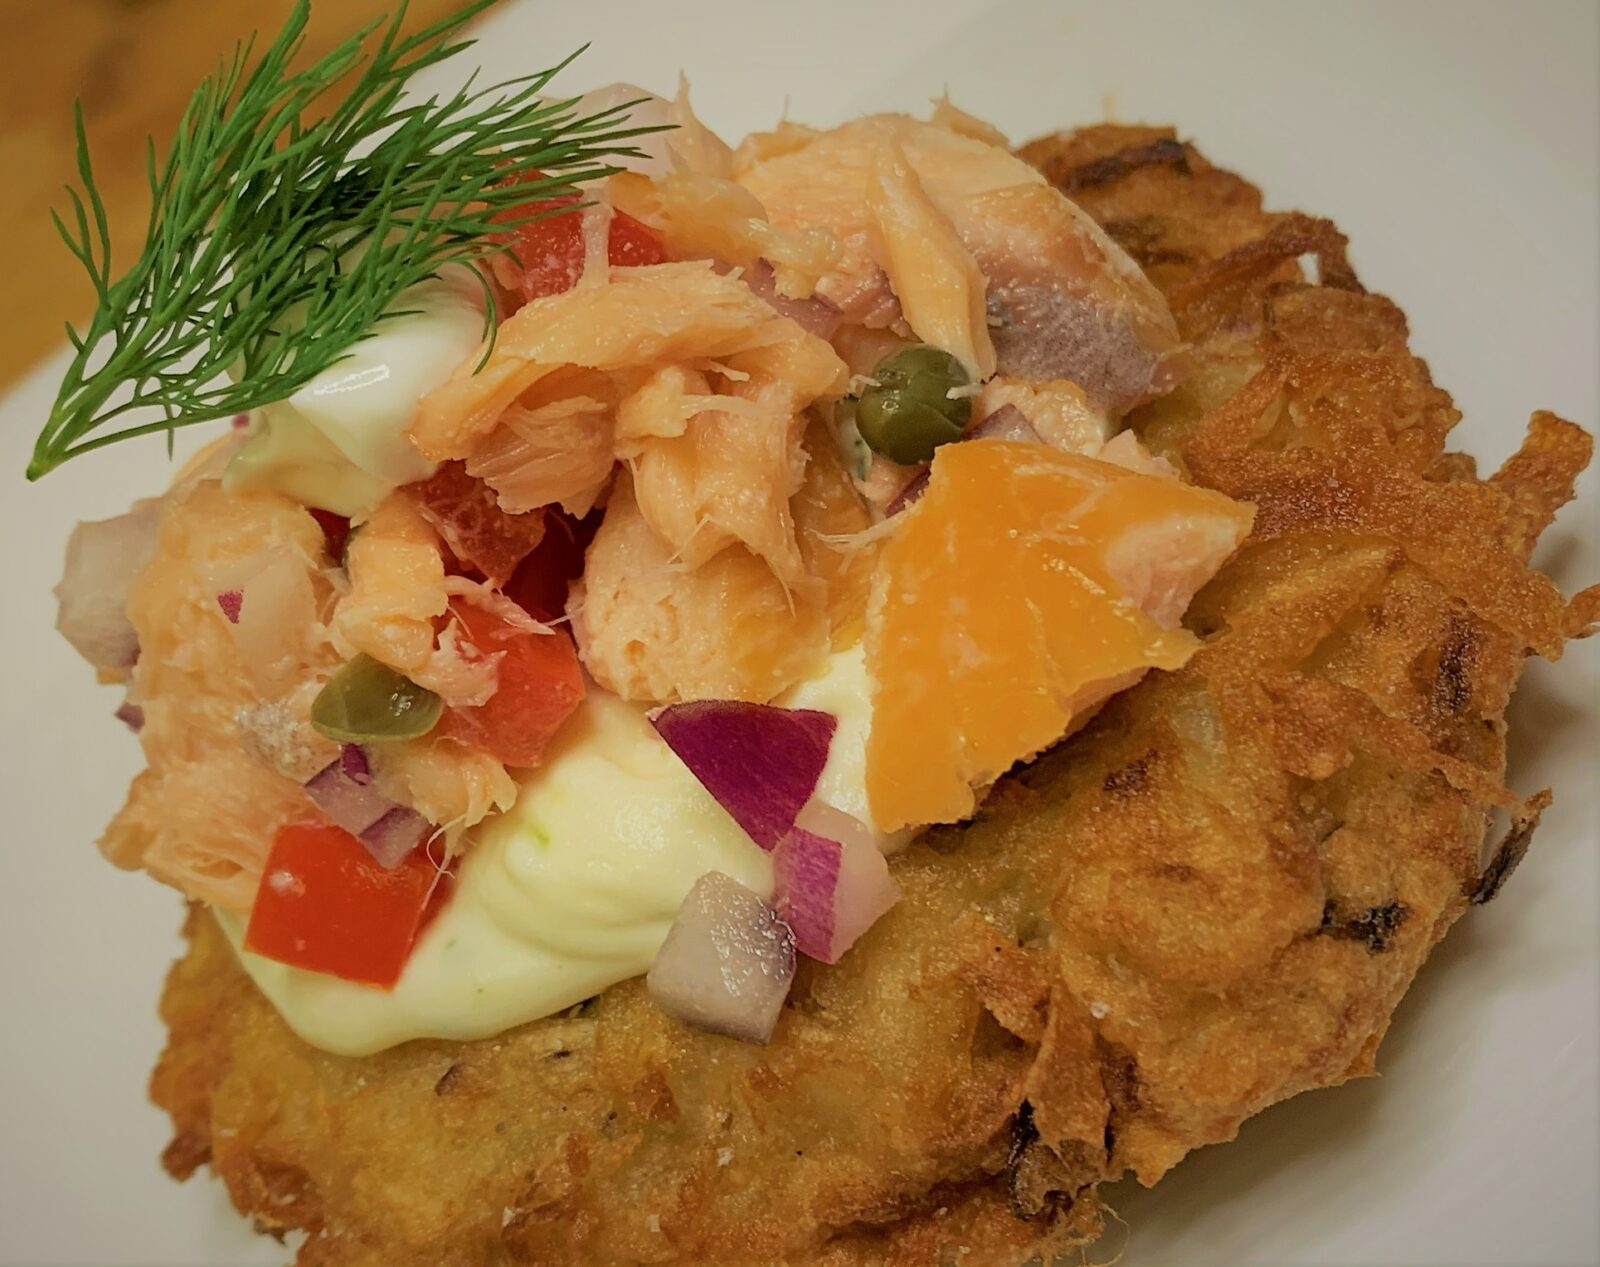 Our plated Smoked Salmon Potato Latke - Smoked Salmon Potato Latkes